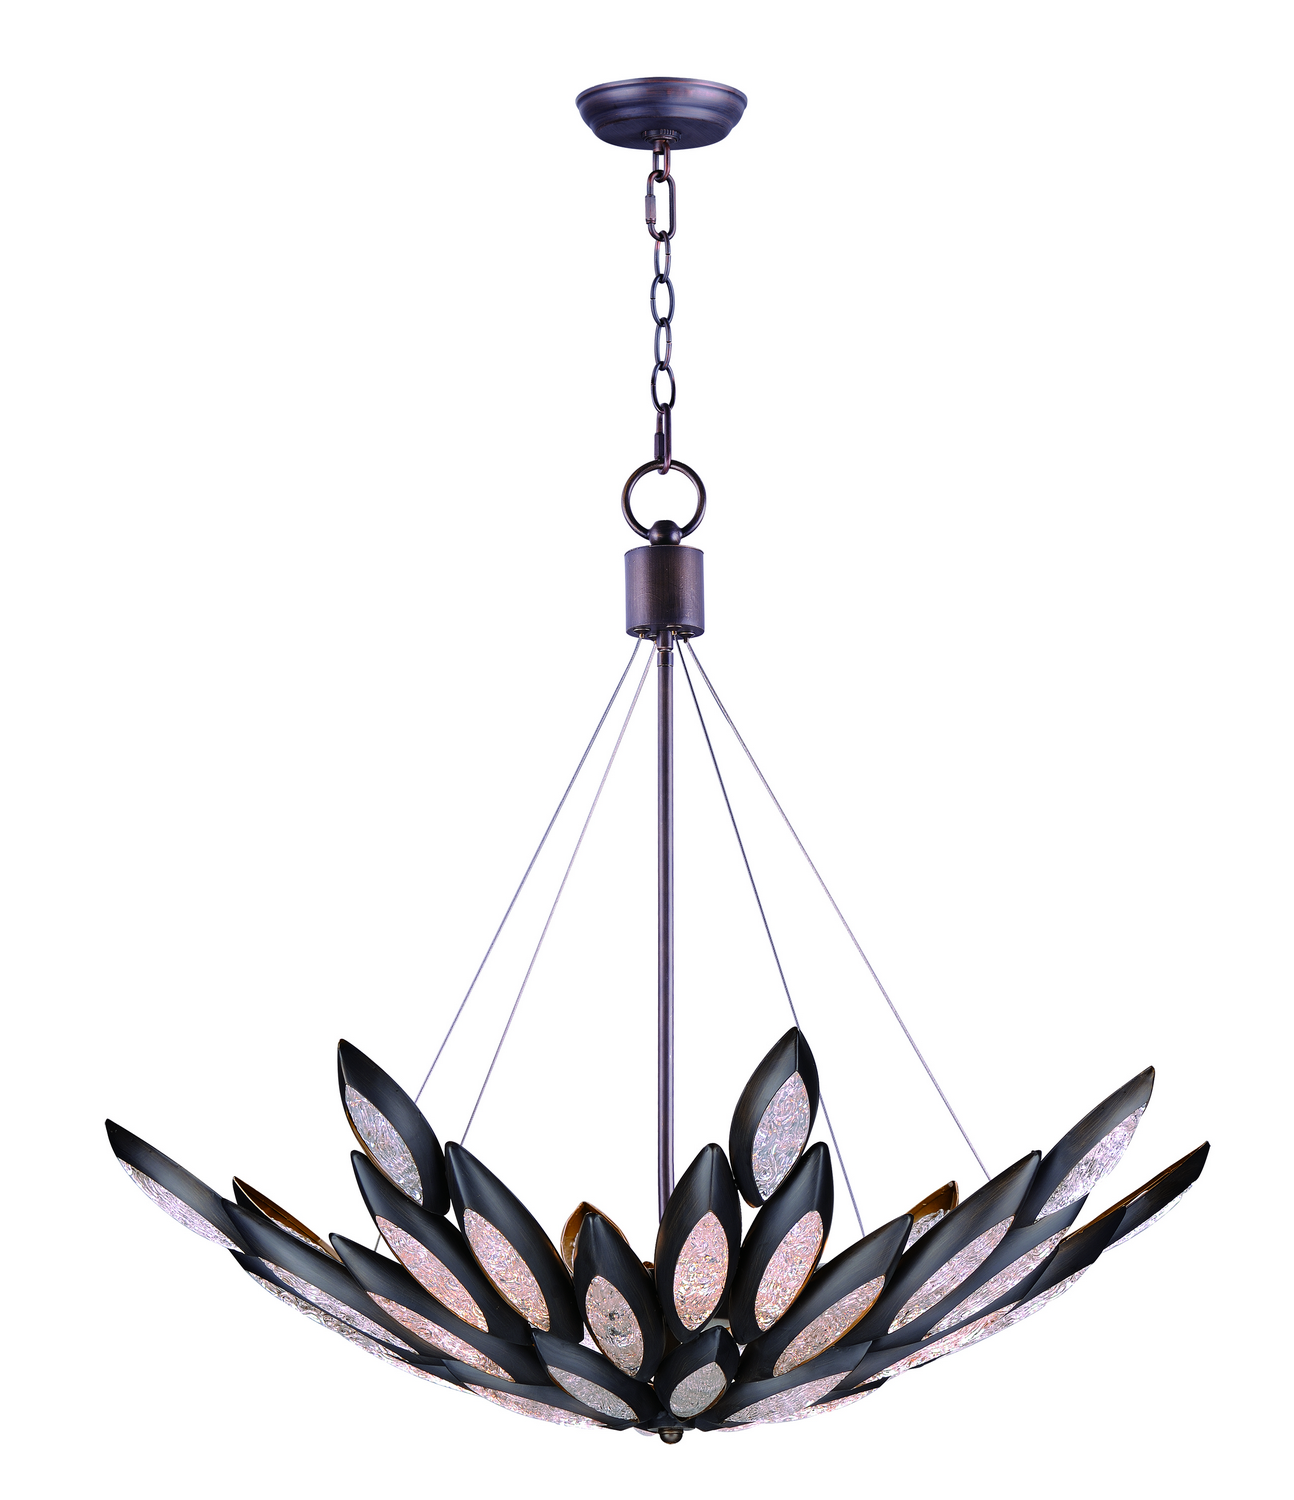 12 Light Pendant from the Lotus collection by Maxim 26316ICBRB